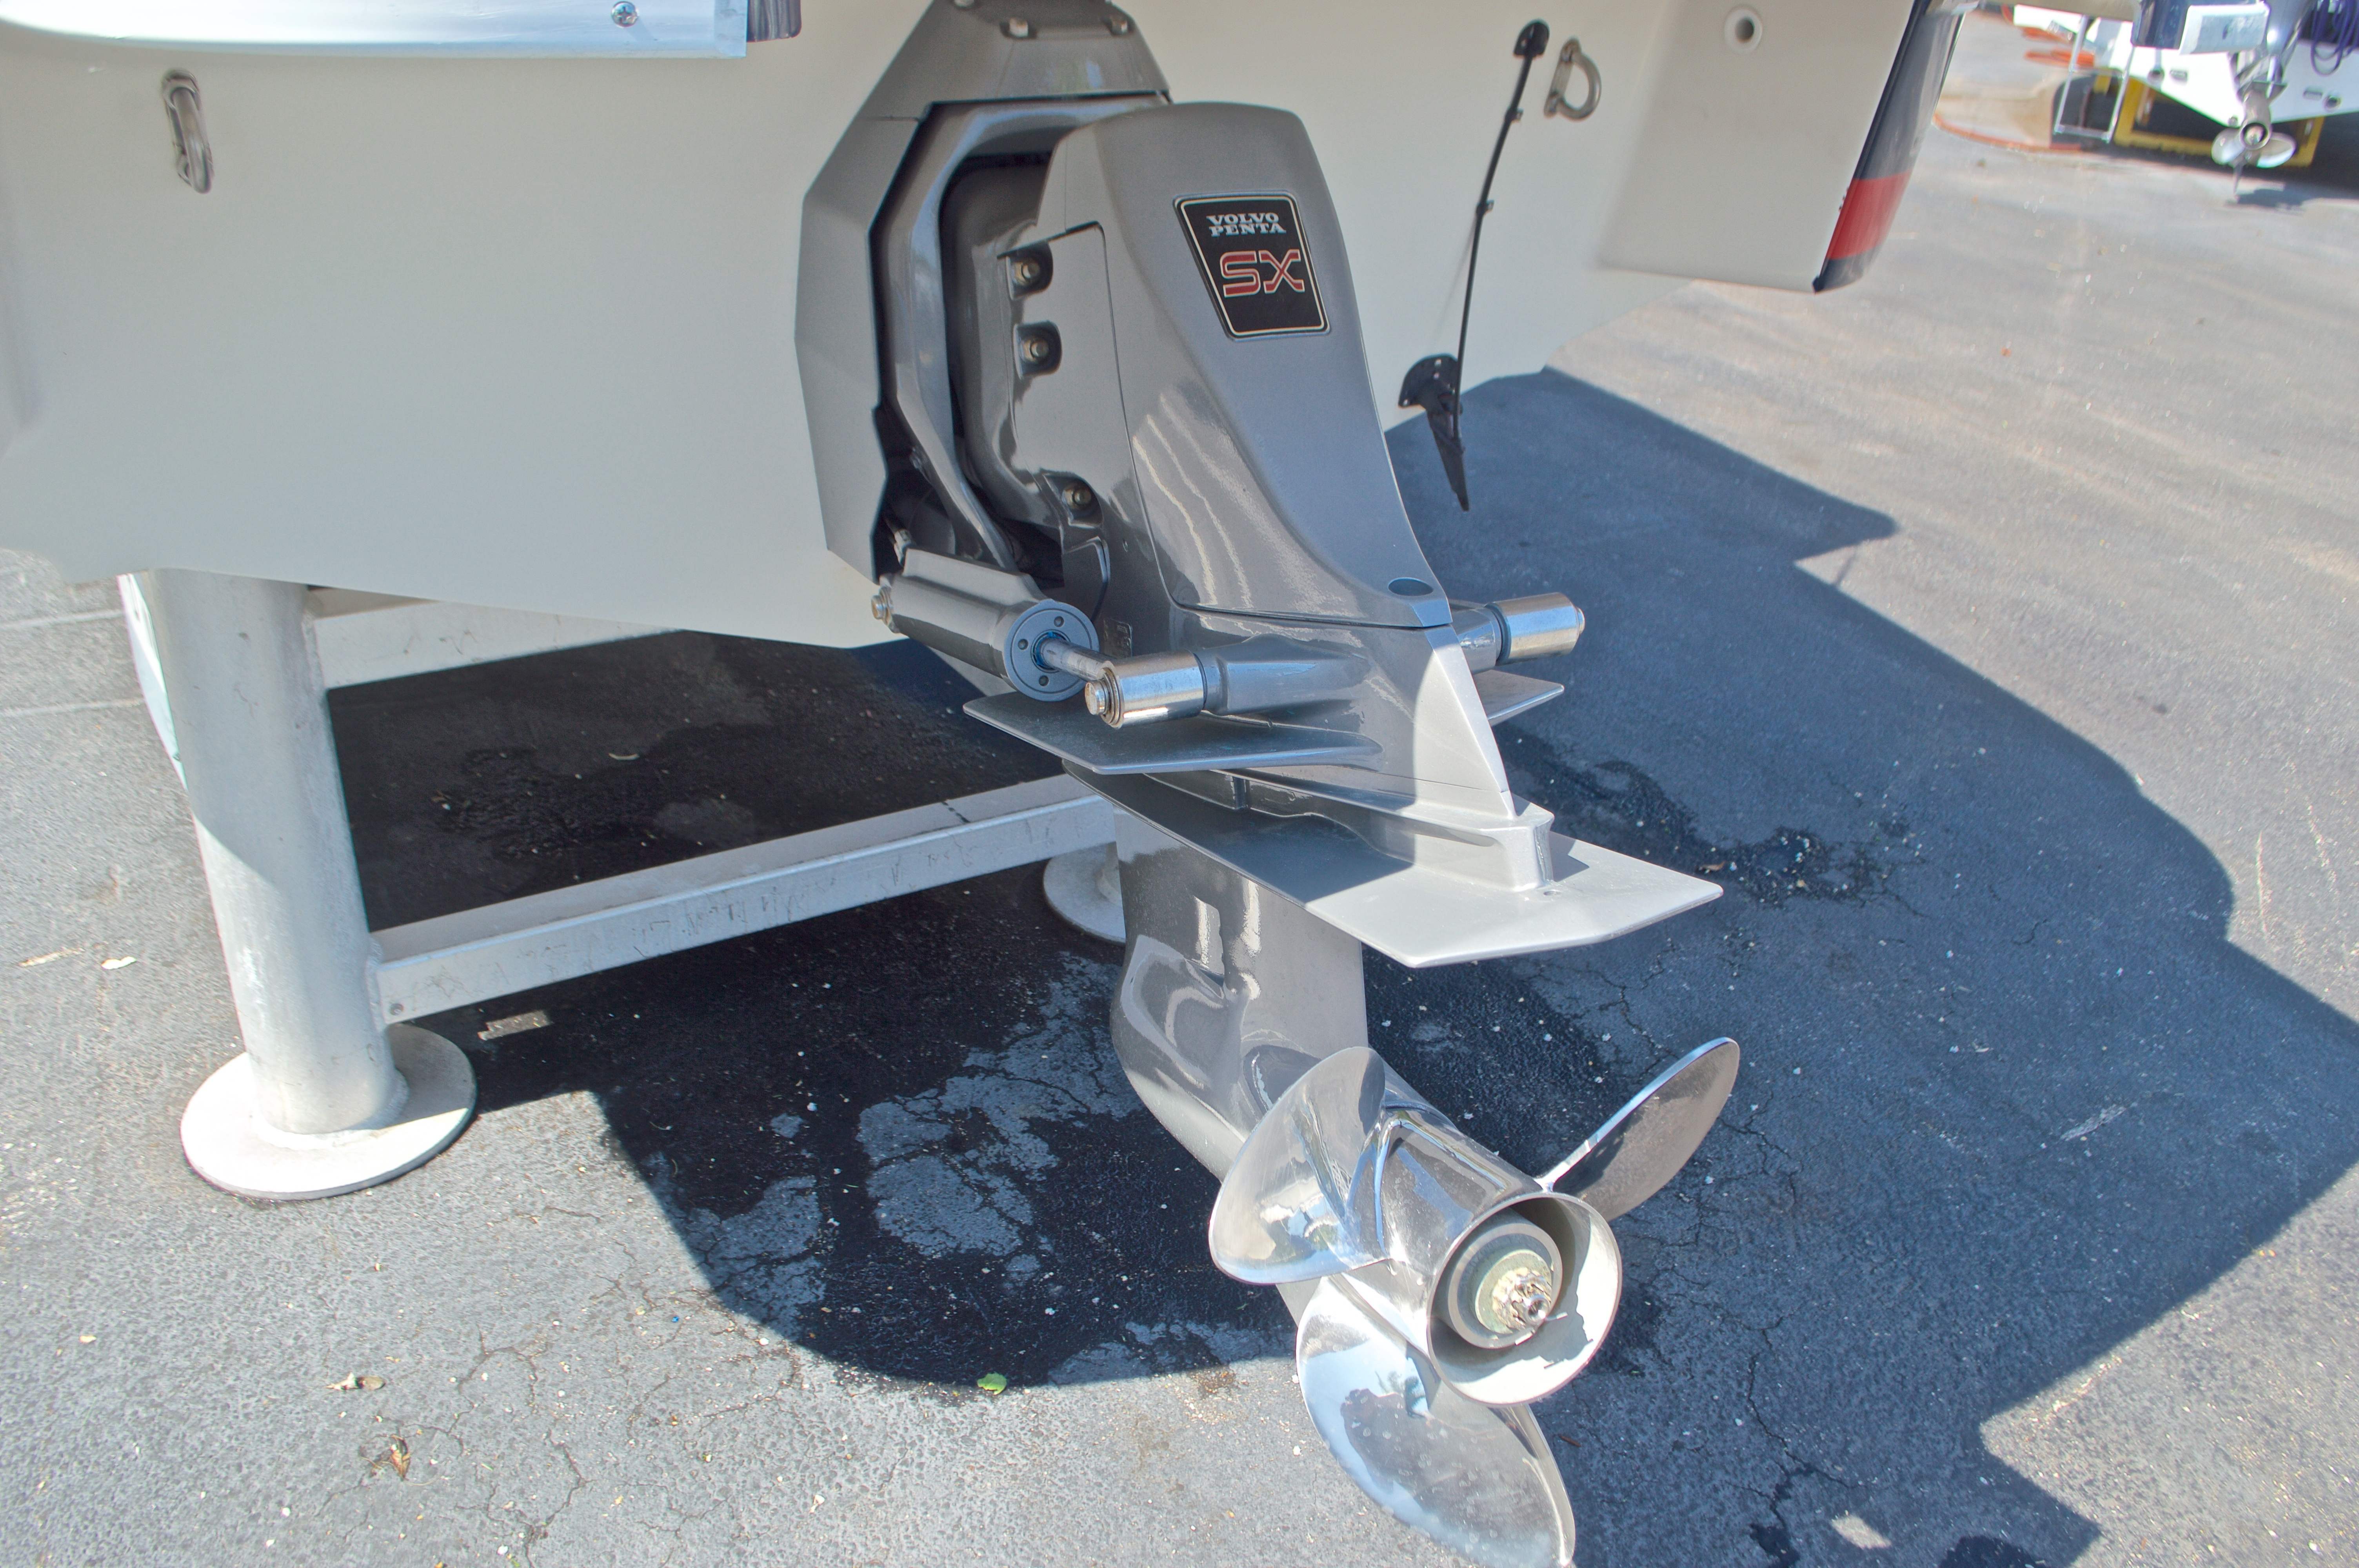 Thumbnail 16 for Used 2007 Chris-Craft 20 Speedster boat for sale in West Palm Beach, FL